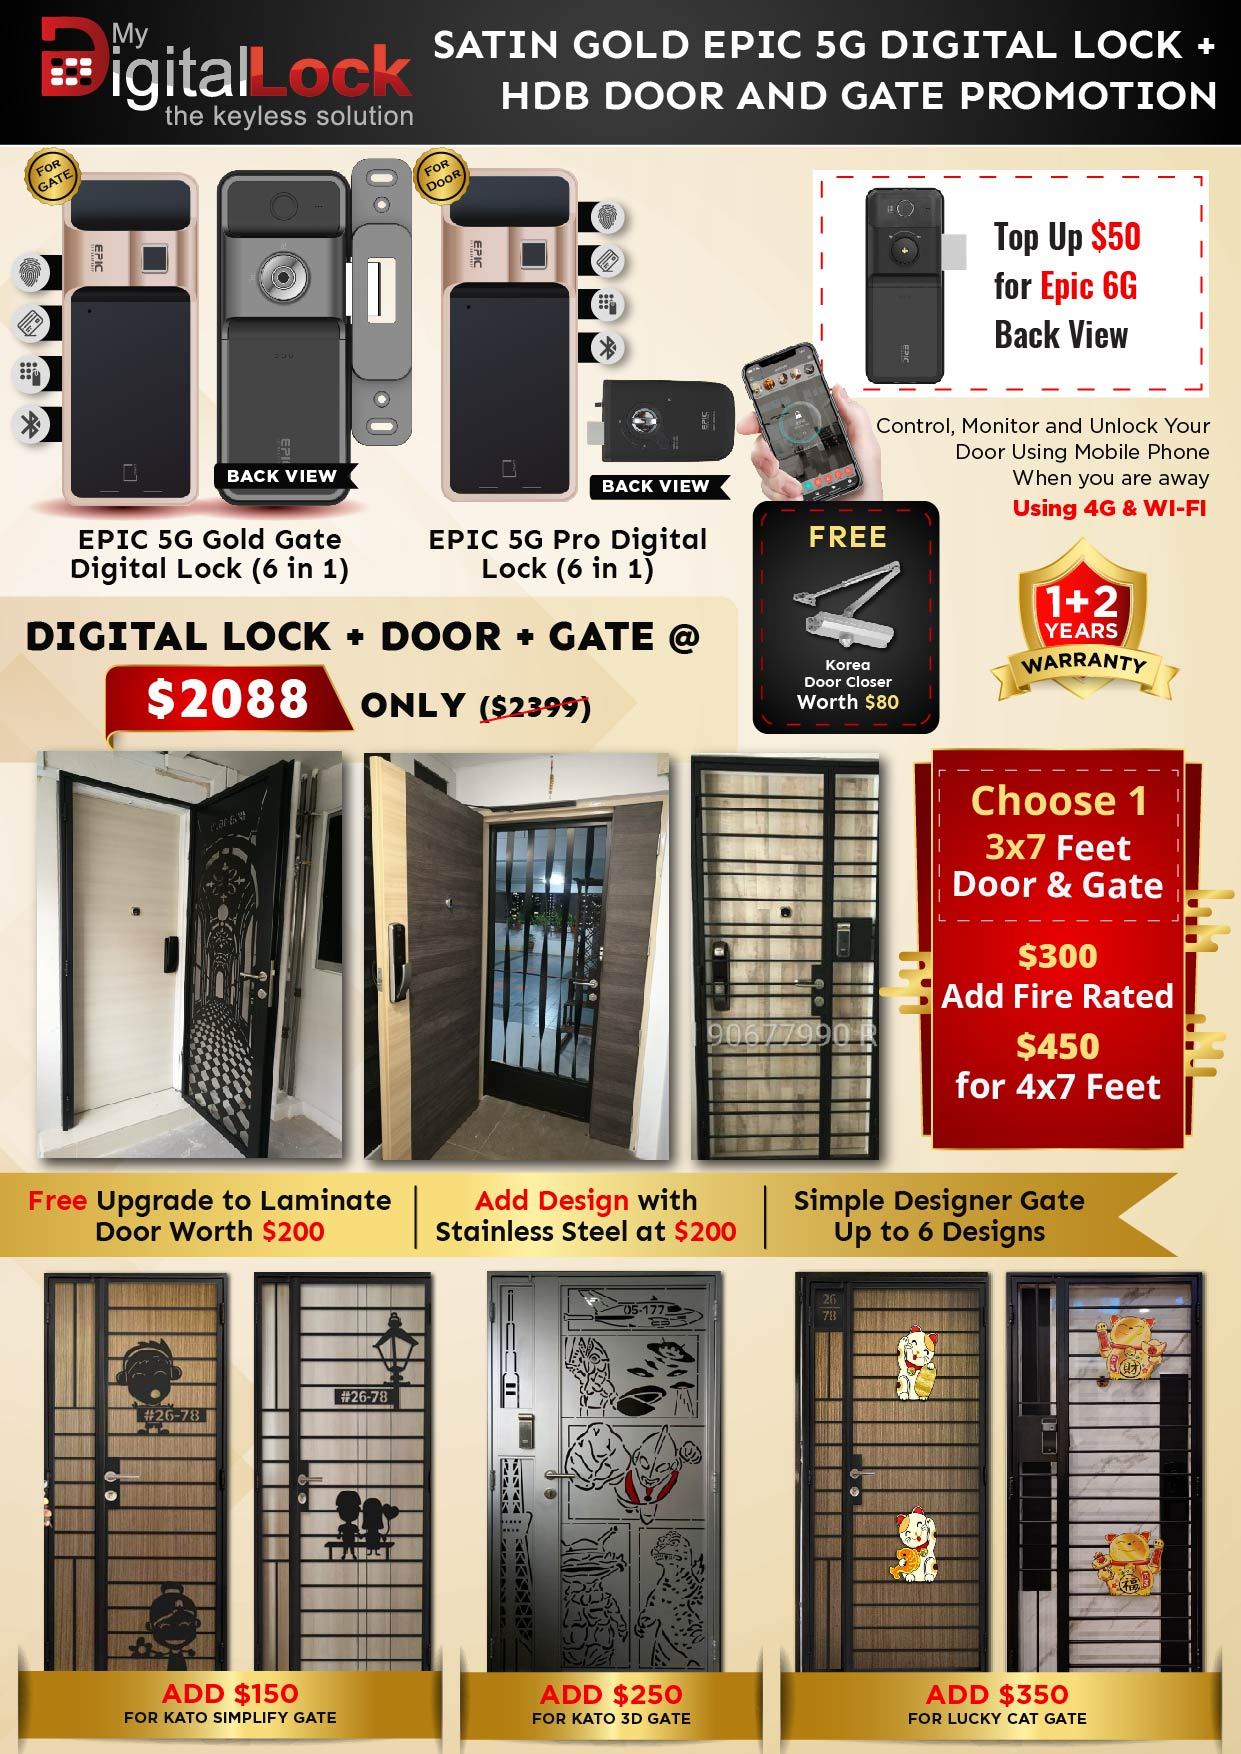 Golden-Rat-Year-HDB-Door-and-Gate-Promotion-with-EPIC-5G-Gold-Gate-and-5G-PRO-Digit